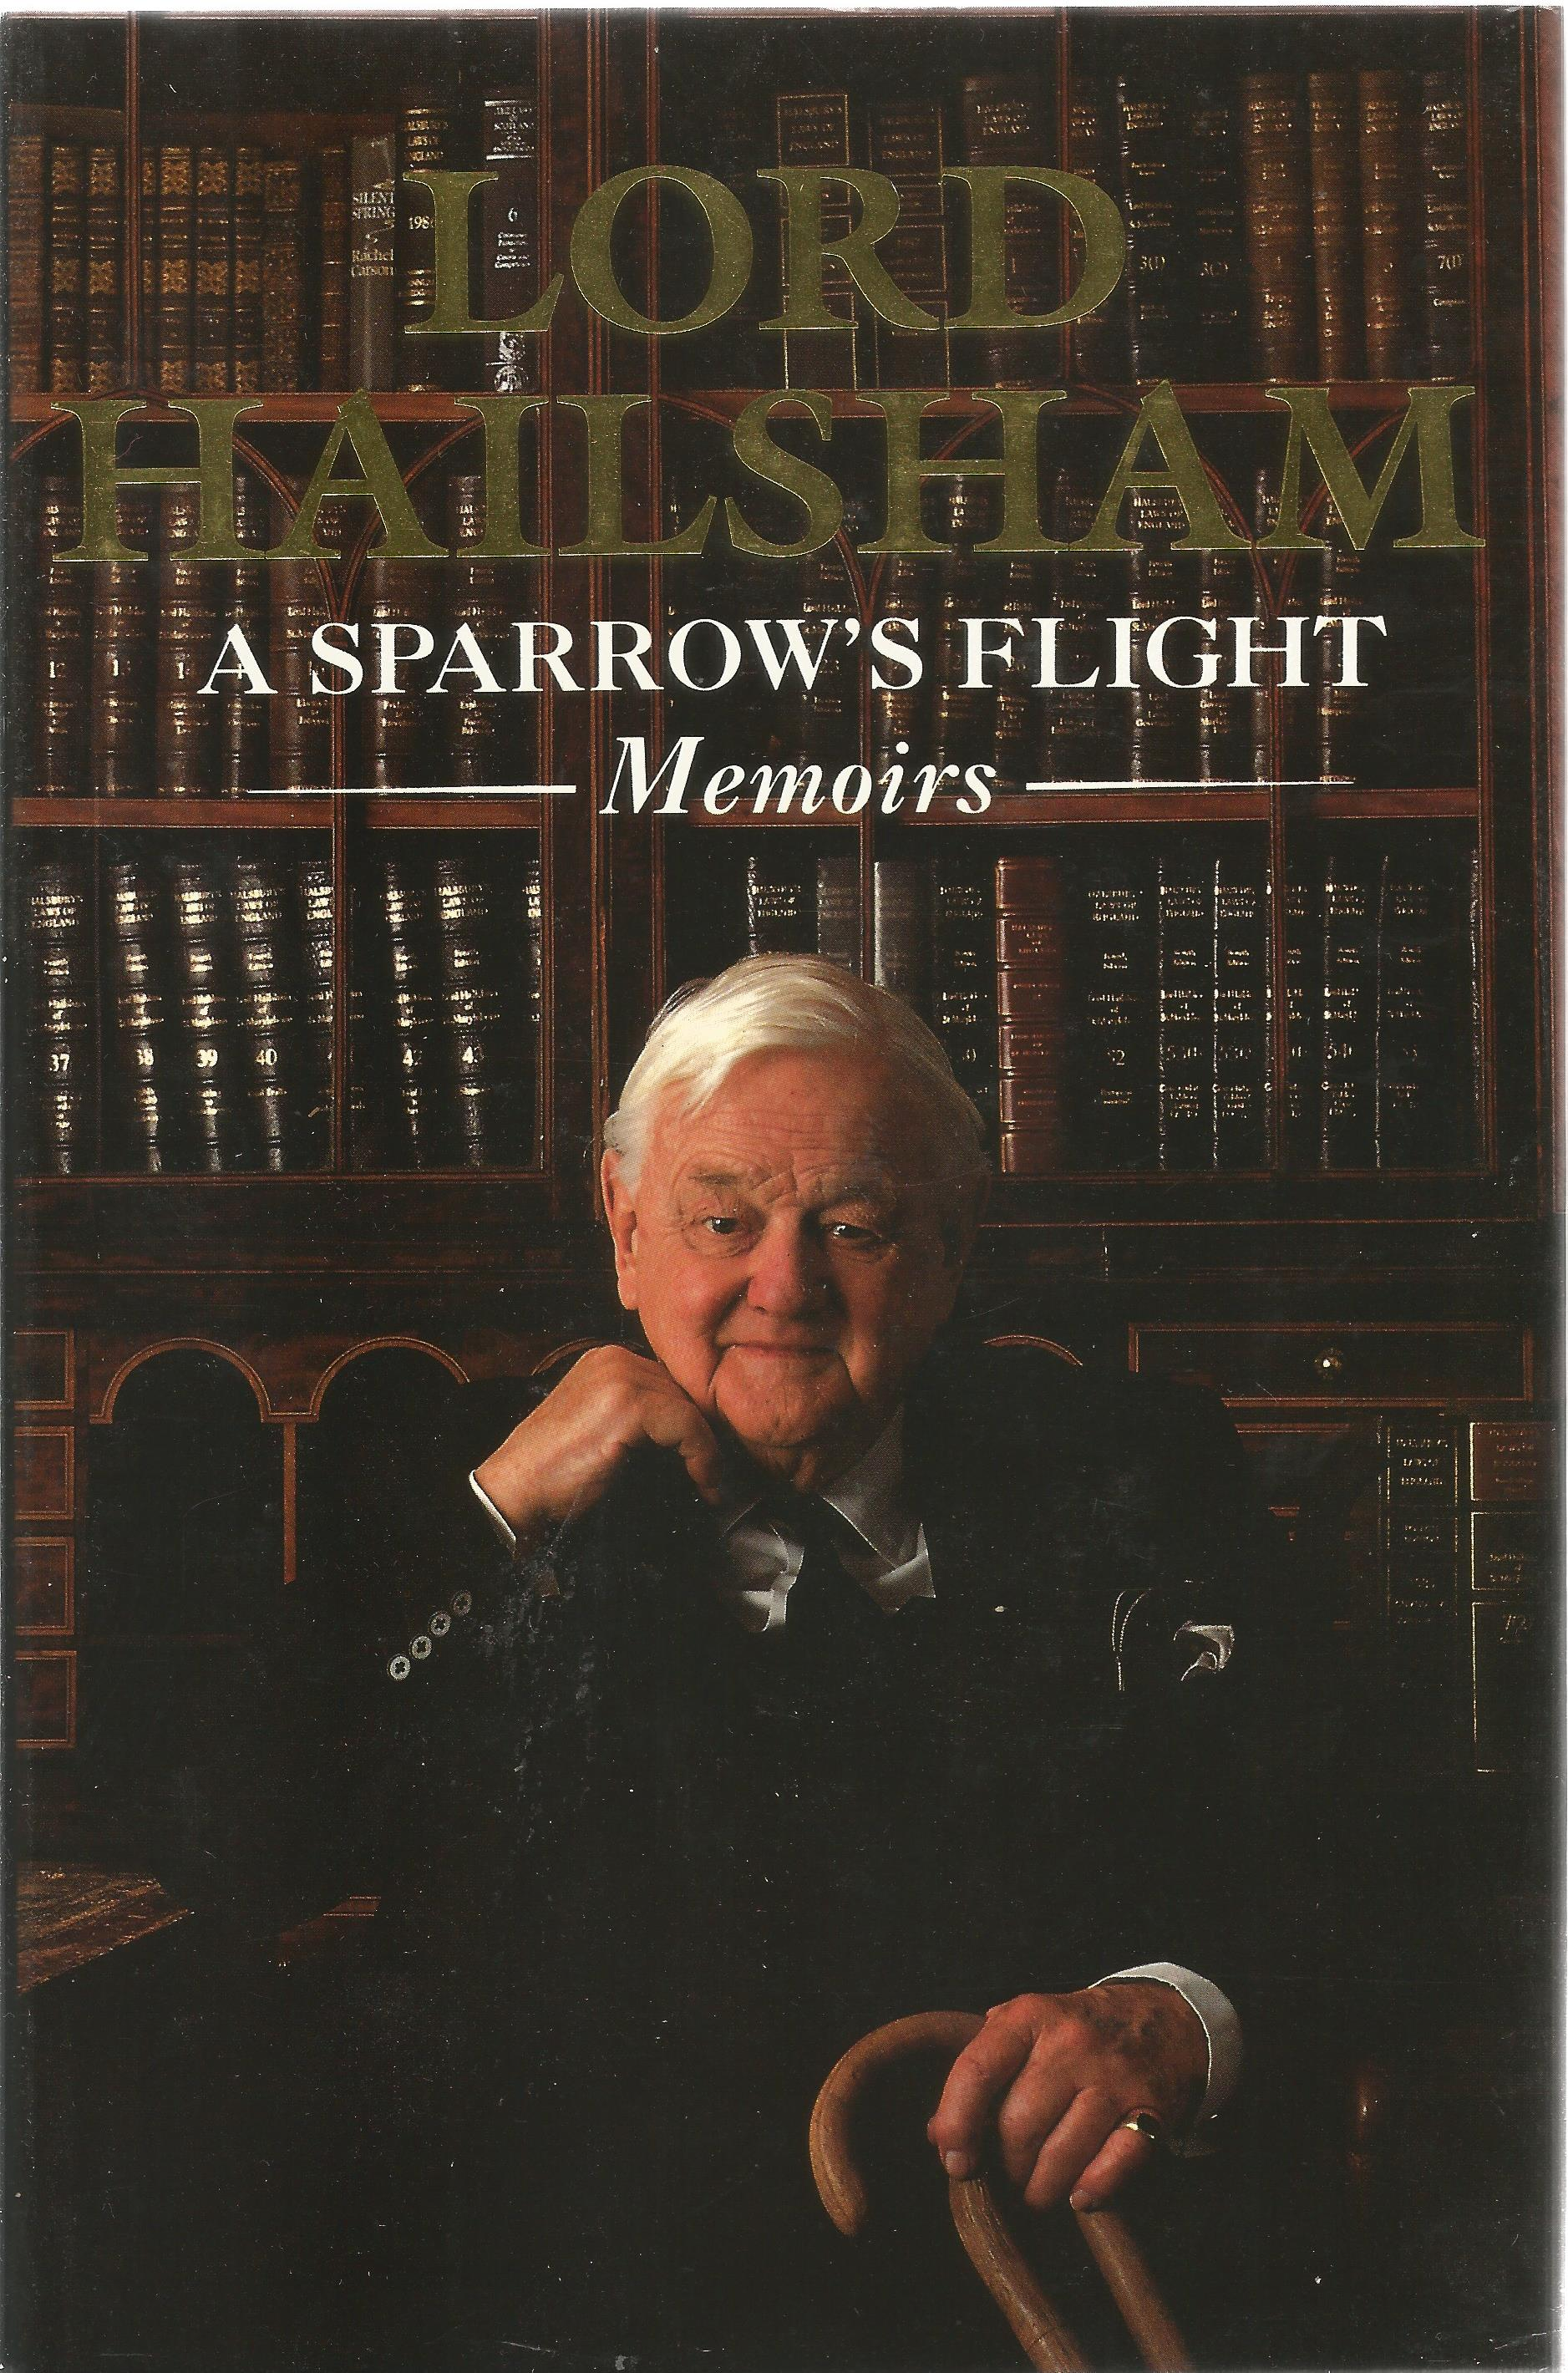 Lord Hailsham Hardback Book A Sparrow's Flight Memoirs signed by the Author on the Title Page